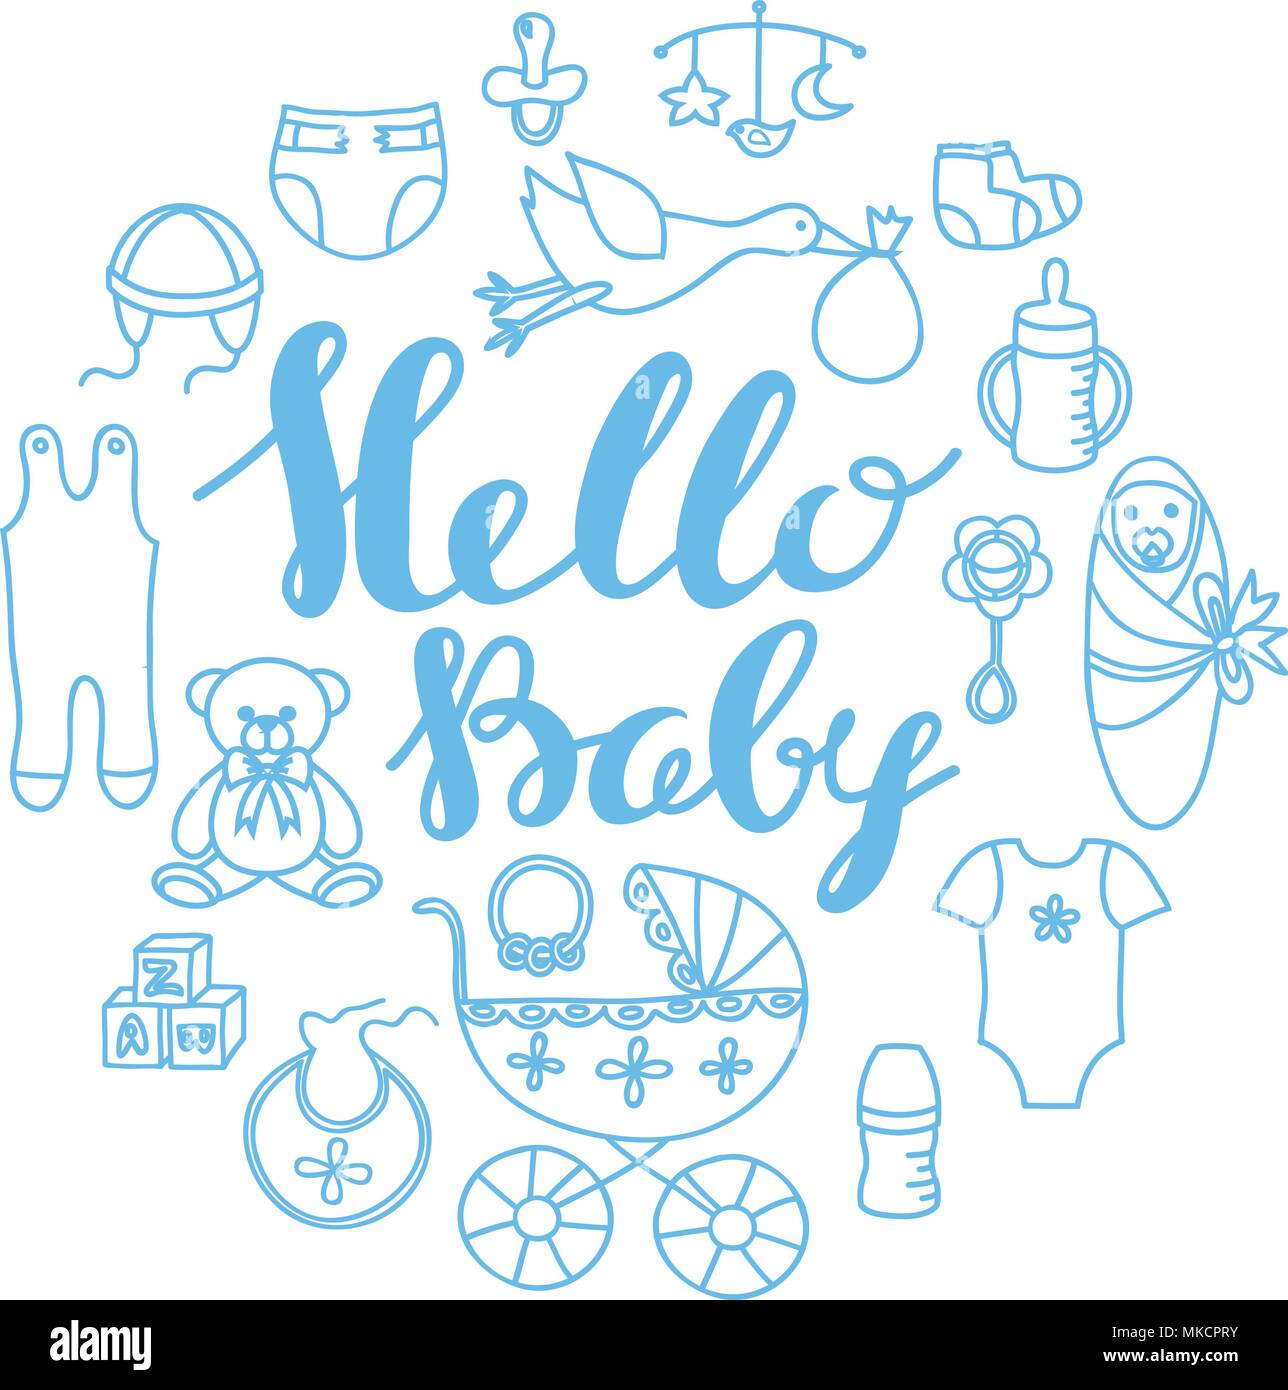 Baby shower celebration greeting and invitation card template with baby shower celebration greeting and invitation card template with hand lettering hello baby and contour baby design elements m4hsunfo